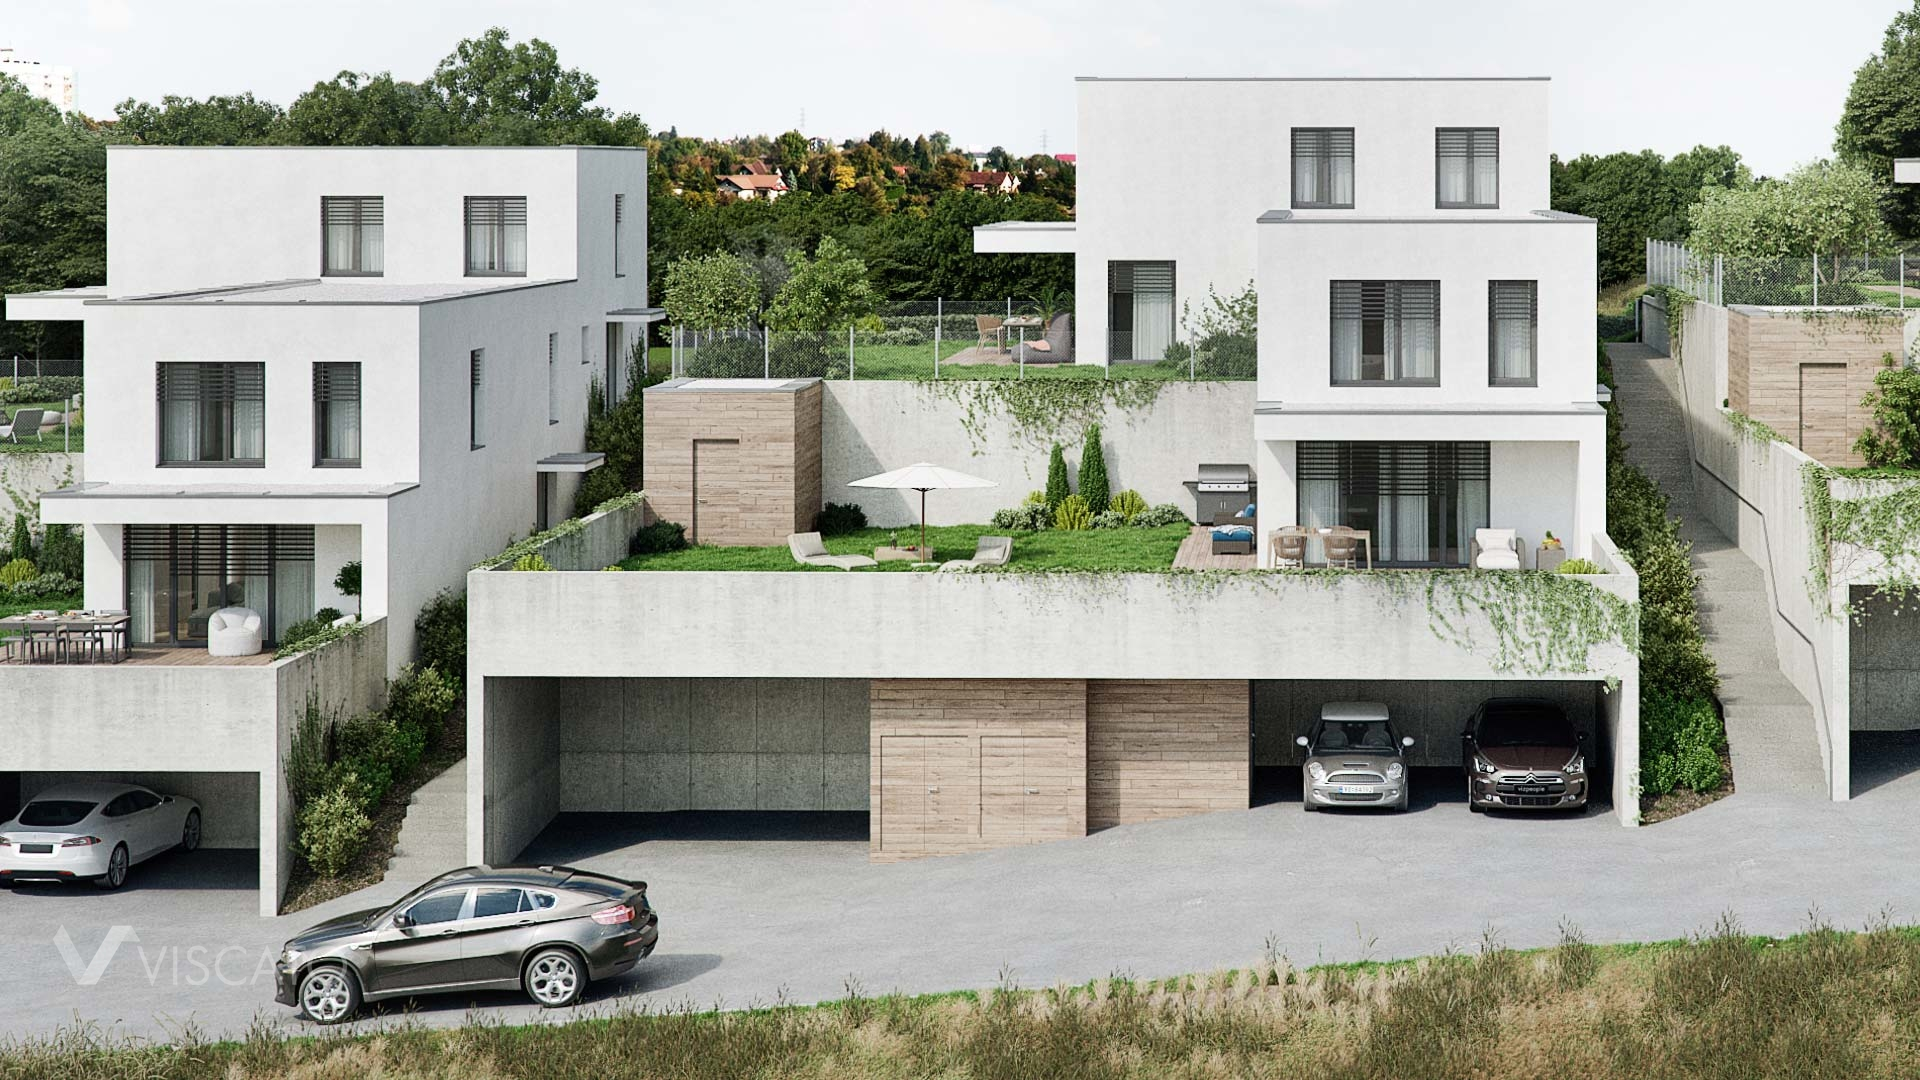 Semi-detached house, 3D visualization